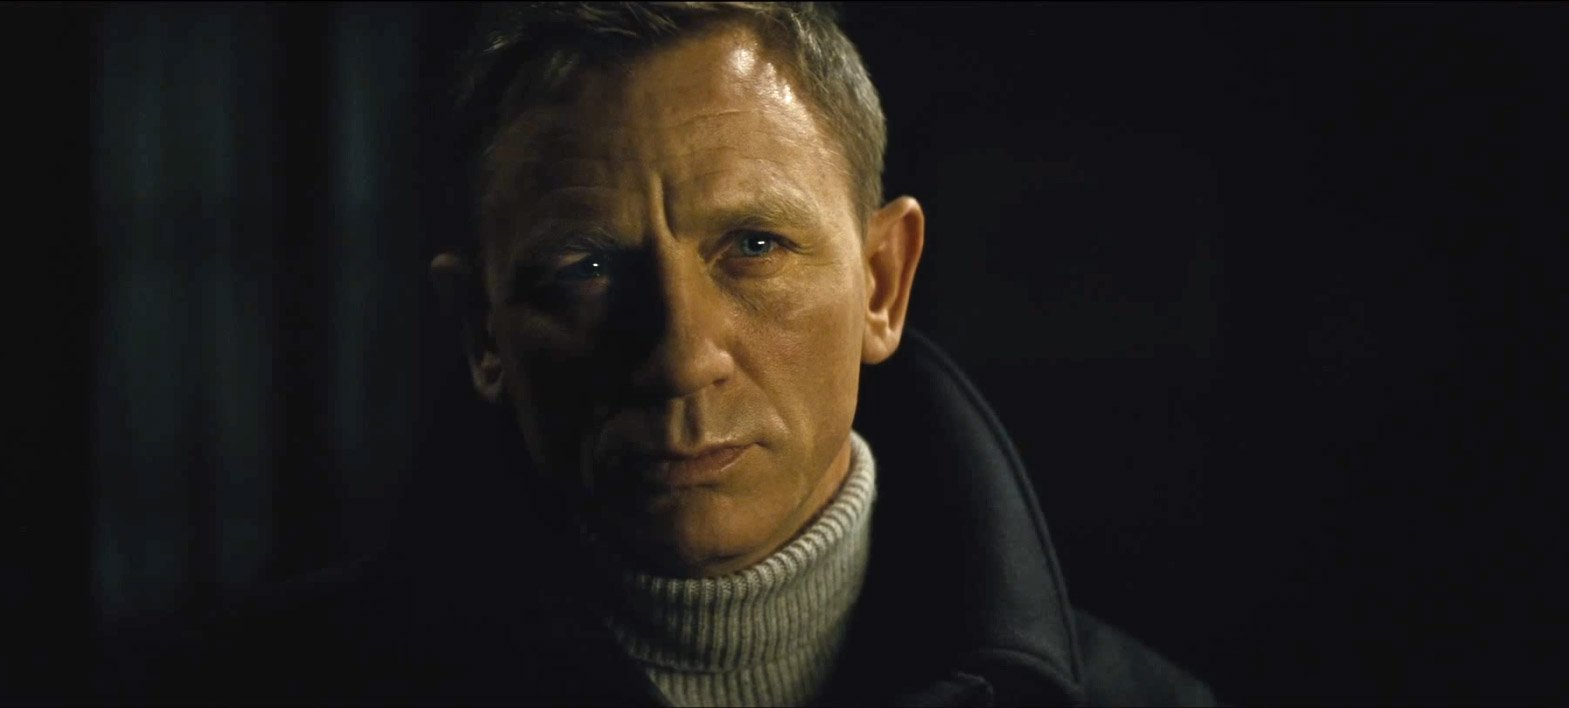 Spectre-Fumo-Grey-Turtleneck